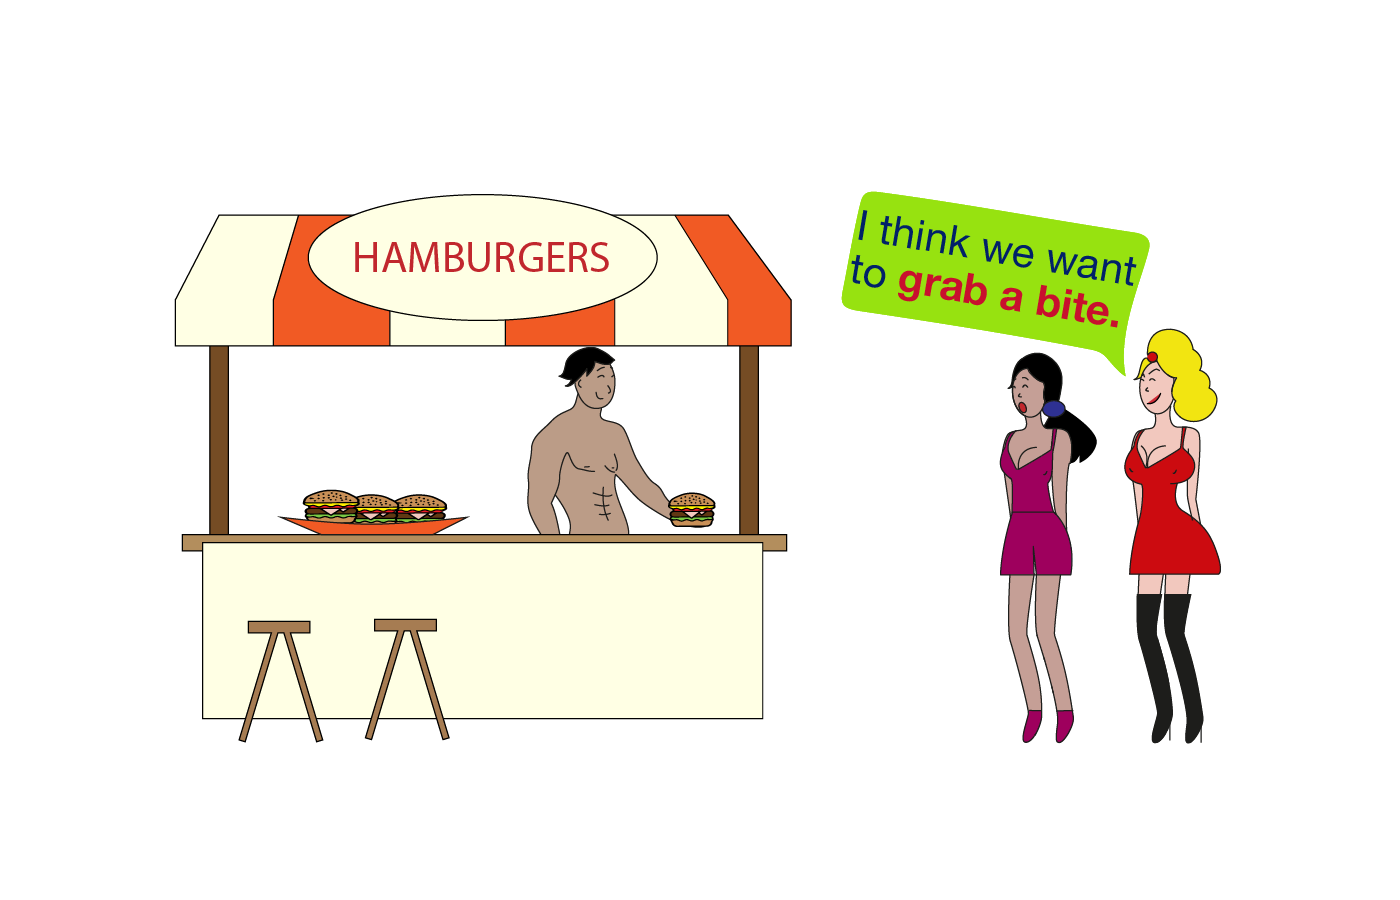 Grab a bite idiom meaning